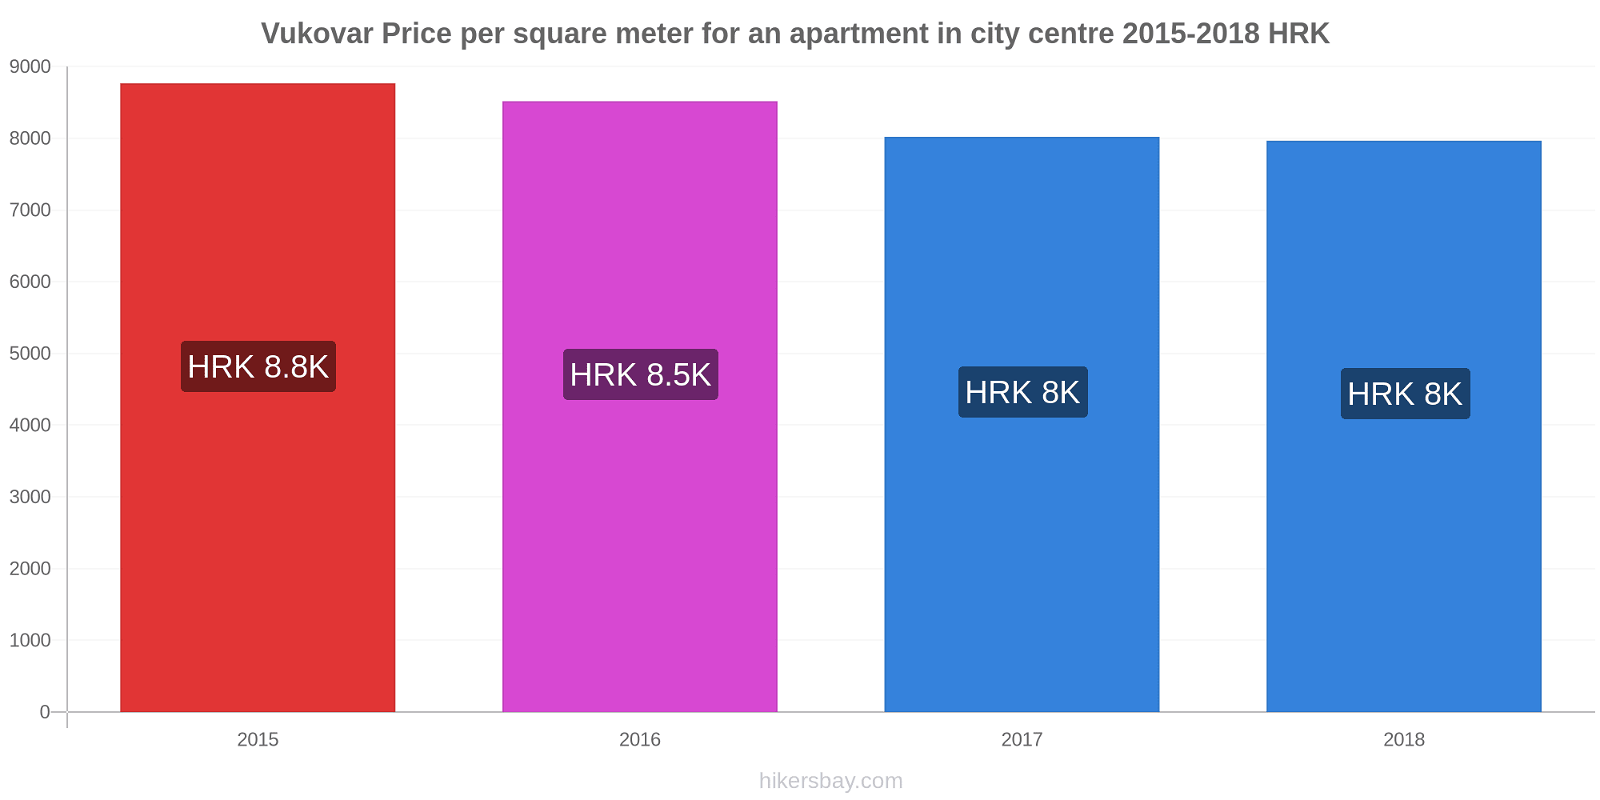 Vukovar price changes Price per square meter for an apartment in city centre hikersbay.com